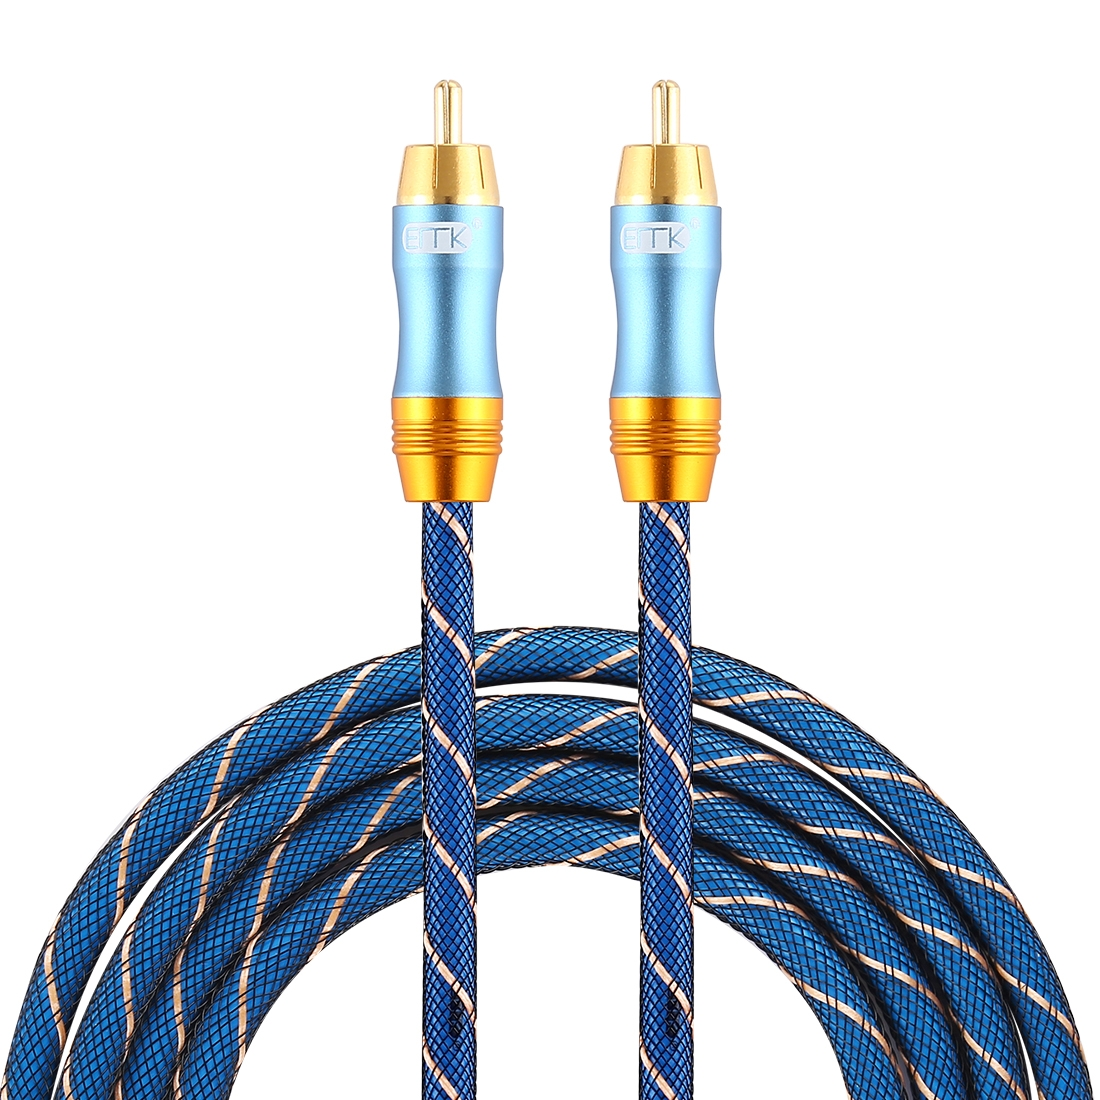 EMK 8mm RCA Male to 6mm RCA Male Gold-plated Plug Grid Nylon Braided Audio Coaxial Cable for Speaker Amplifier Mixer, Length: 2m (Blue)